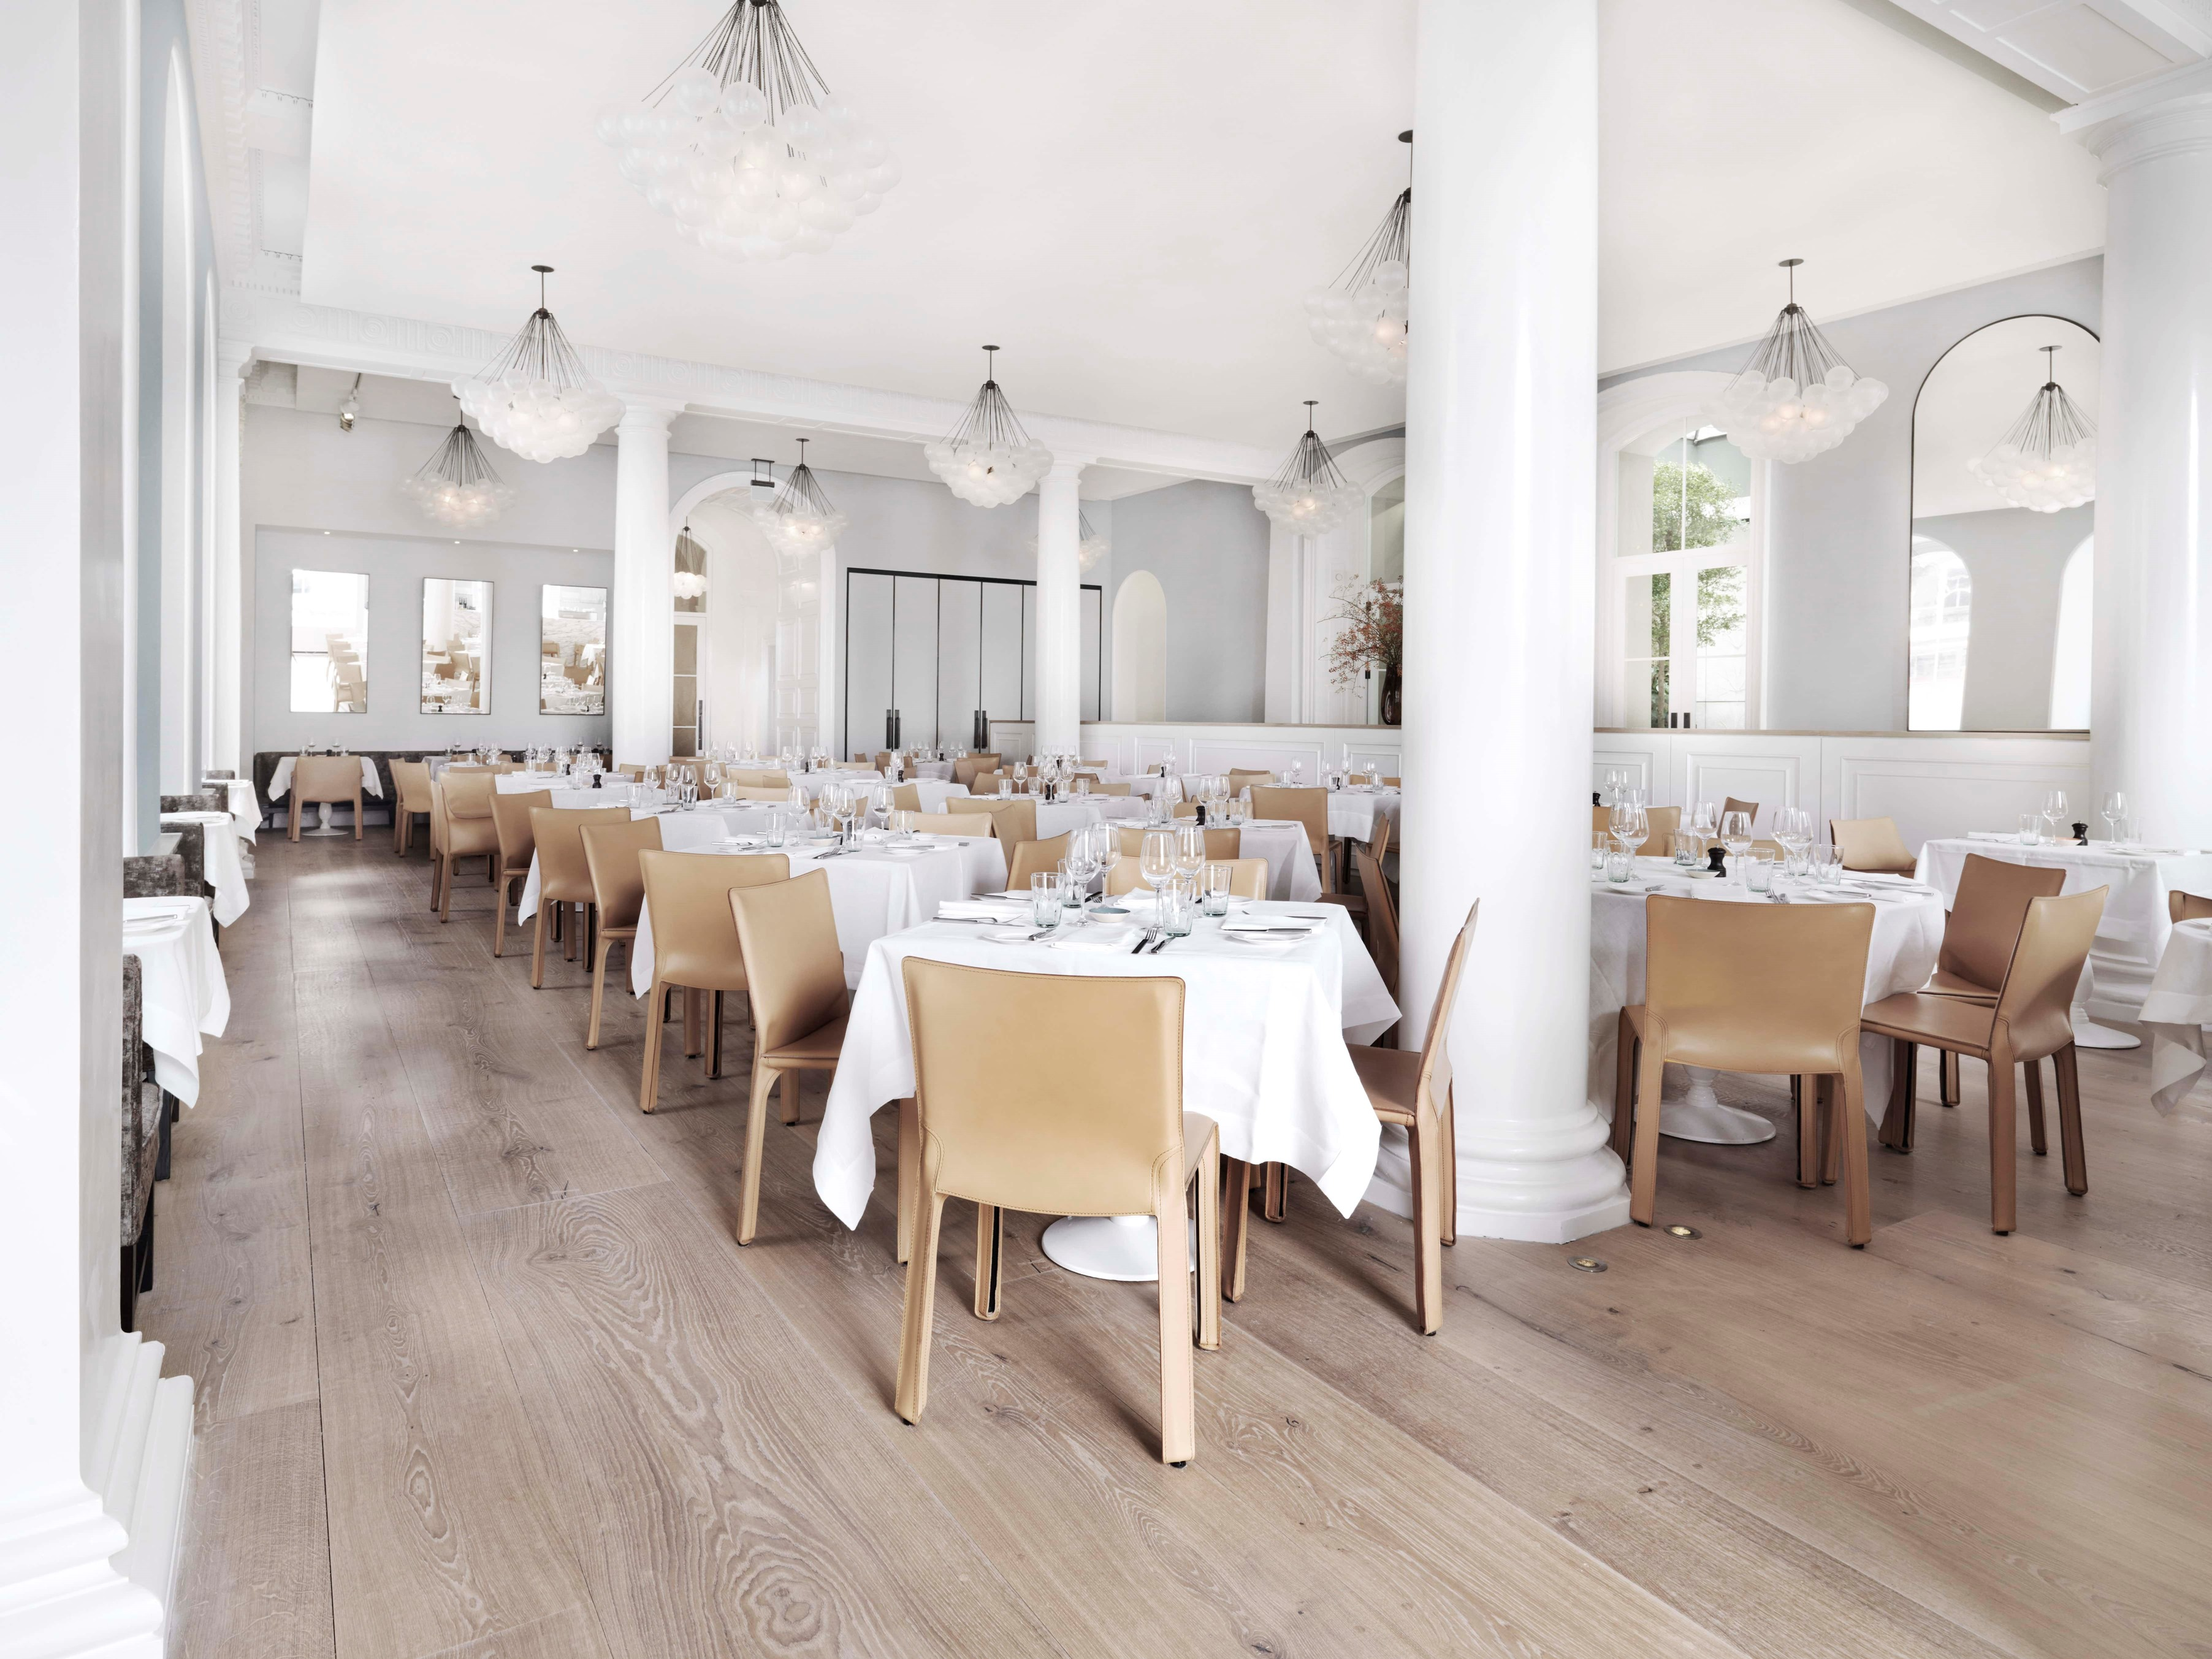 oak flooring heartoak light oil spring restaurant dining hall dinesen 04.jpg